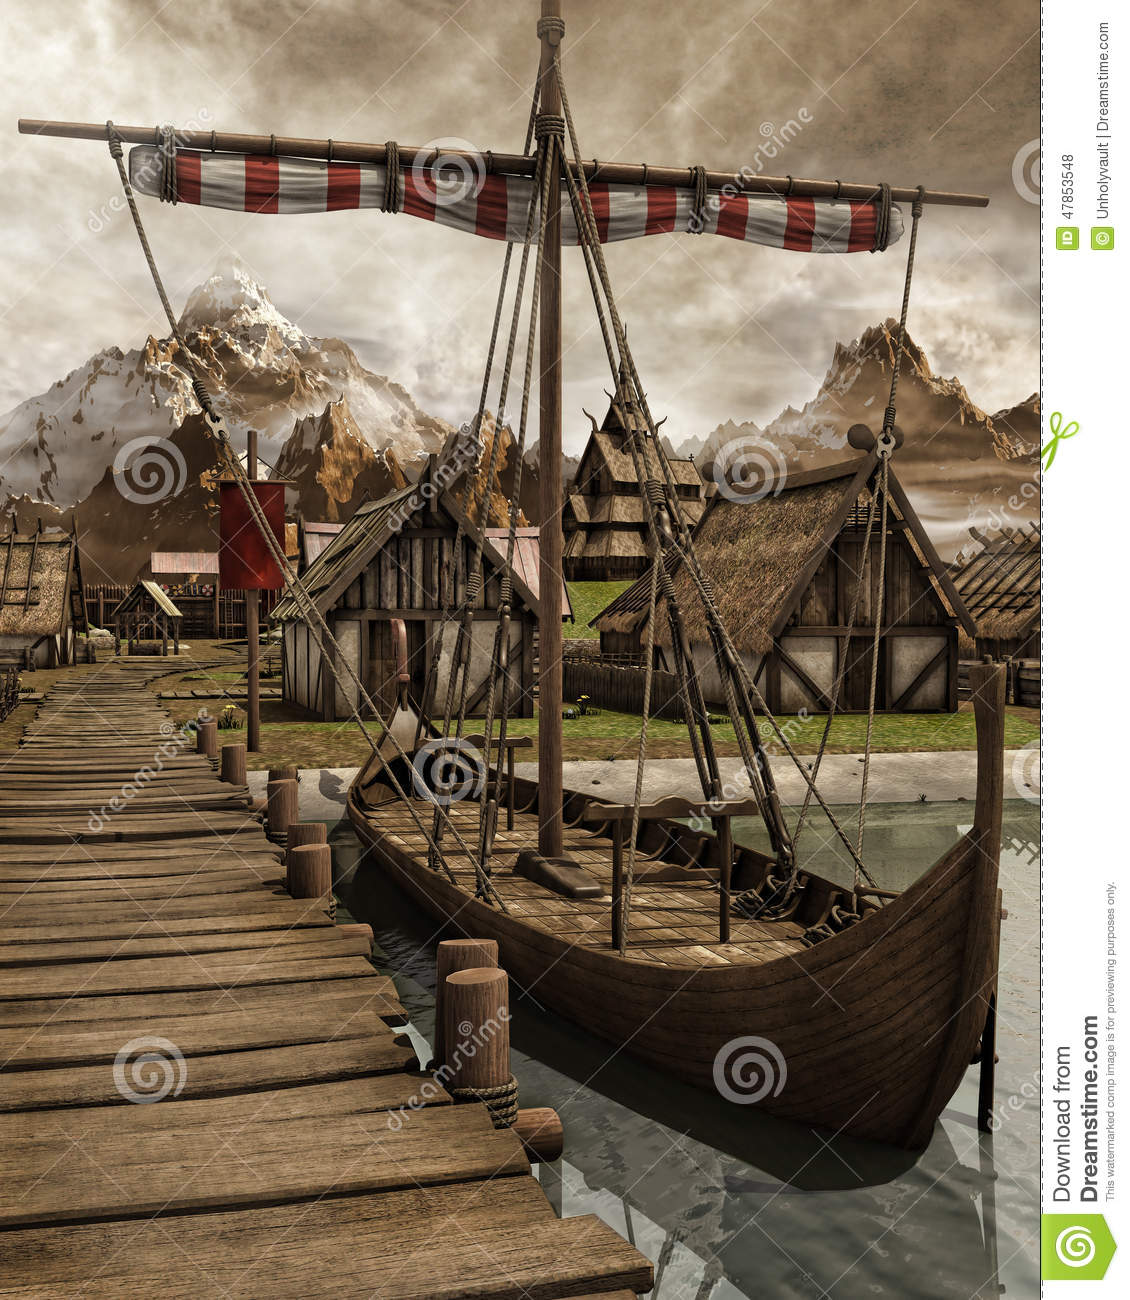 Viking Boat In A Village Stock Illustration - Image: 47853548